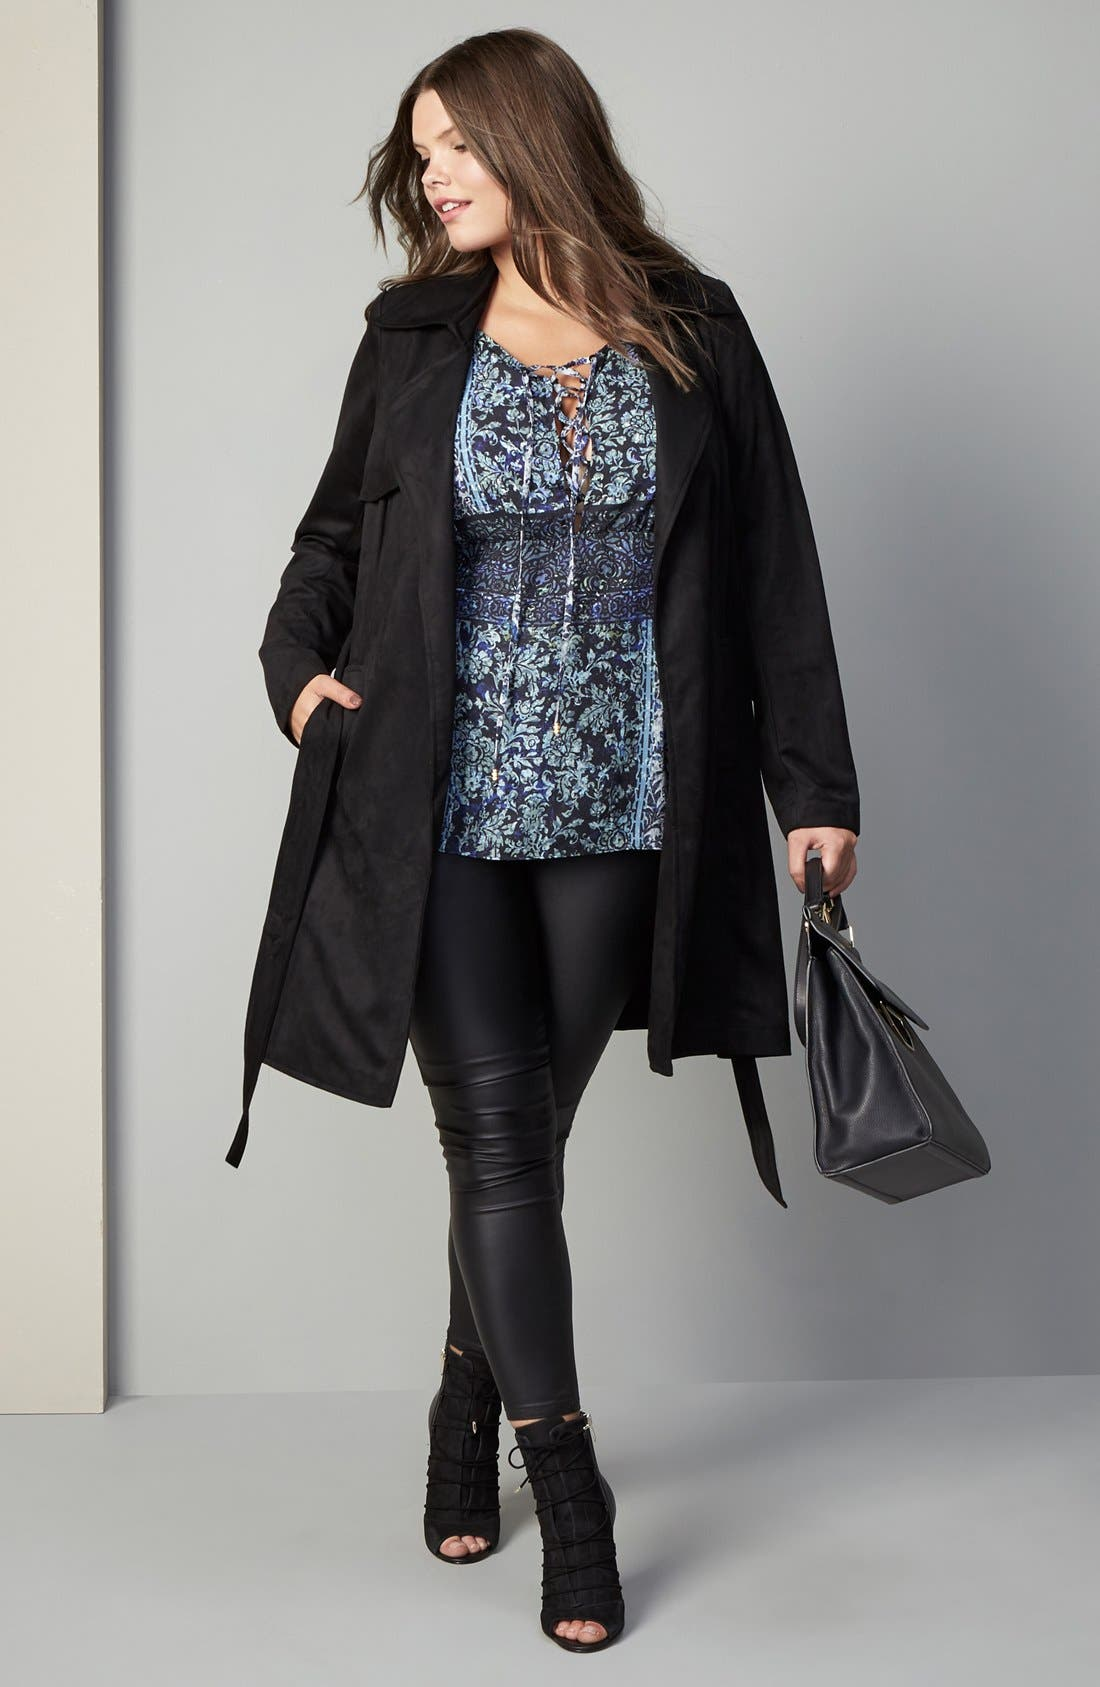 City Chic Trench, Top & Jeans Outfit with Accessories (Plus Size)